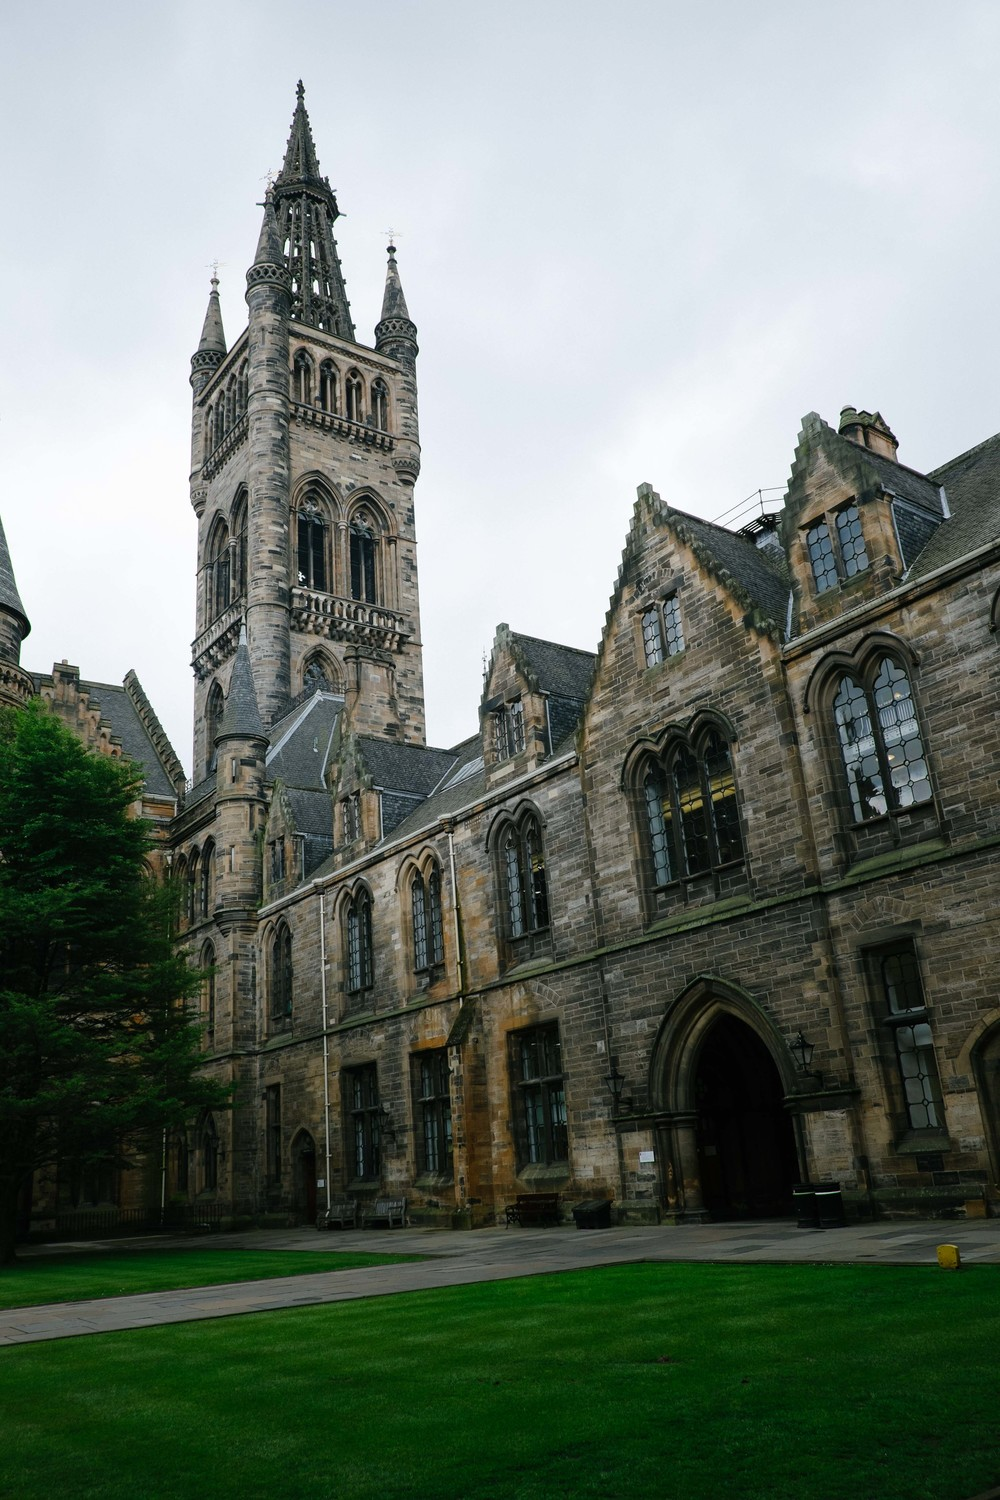 University of Glasgow - West Quadrangle/Gilbert Scott Building